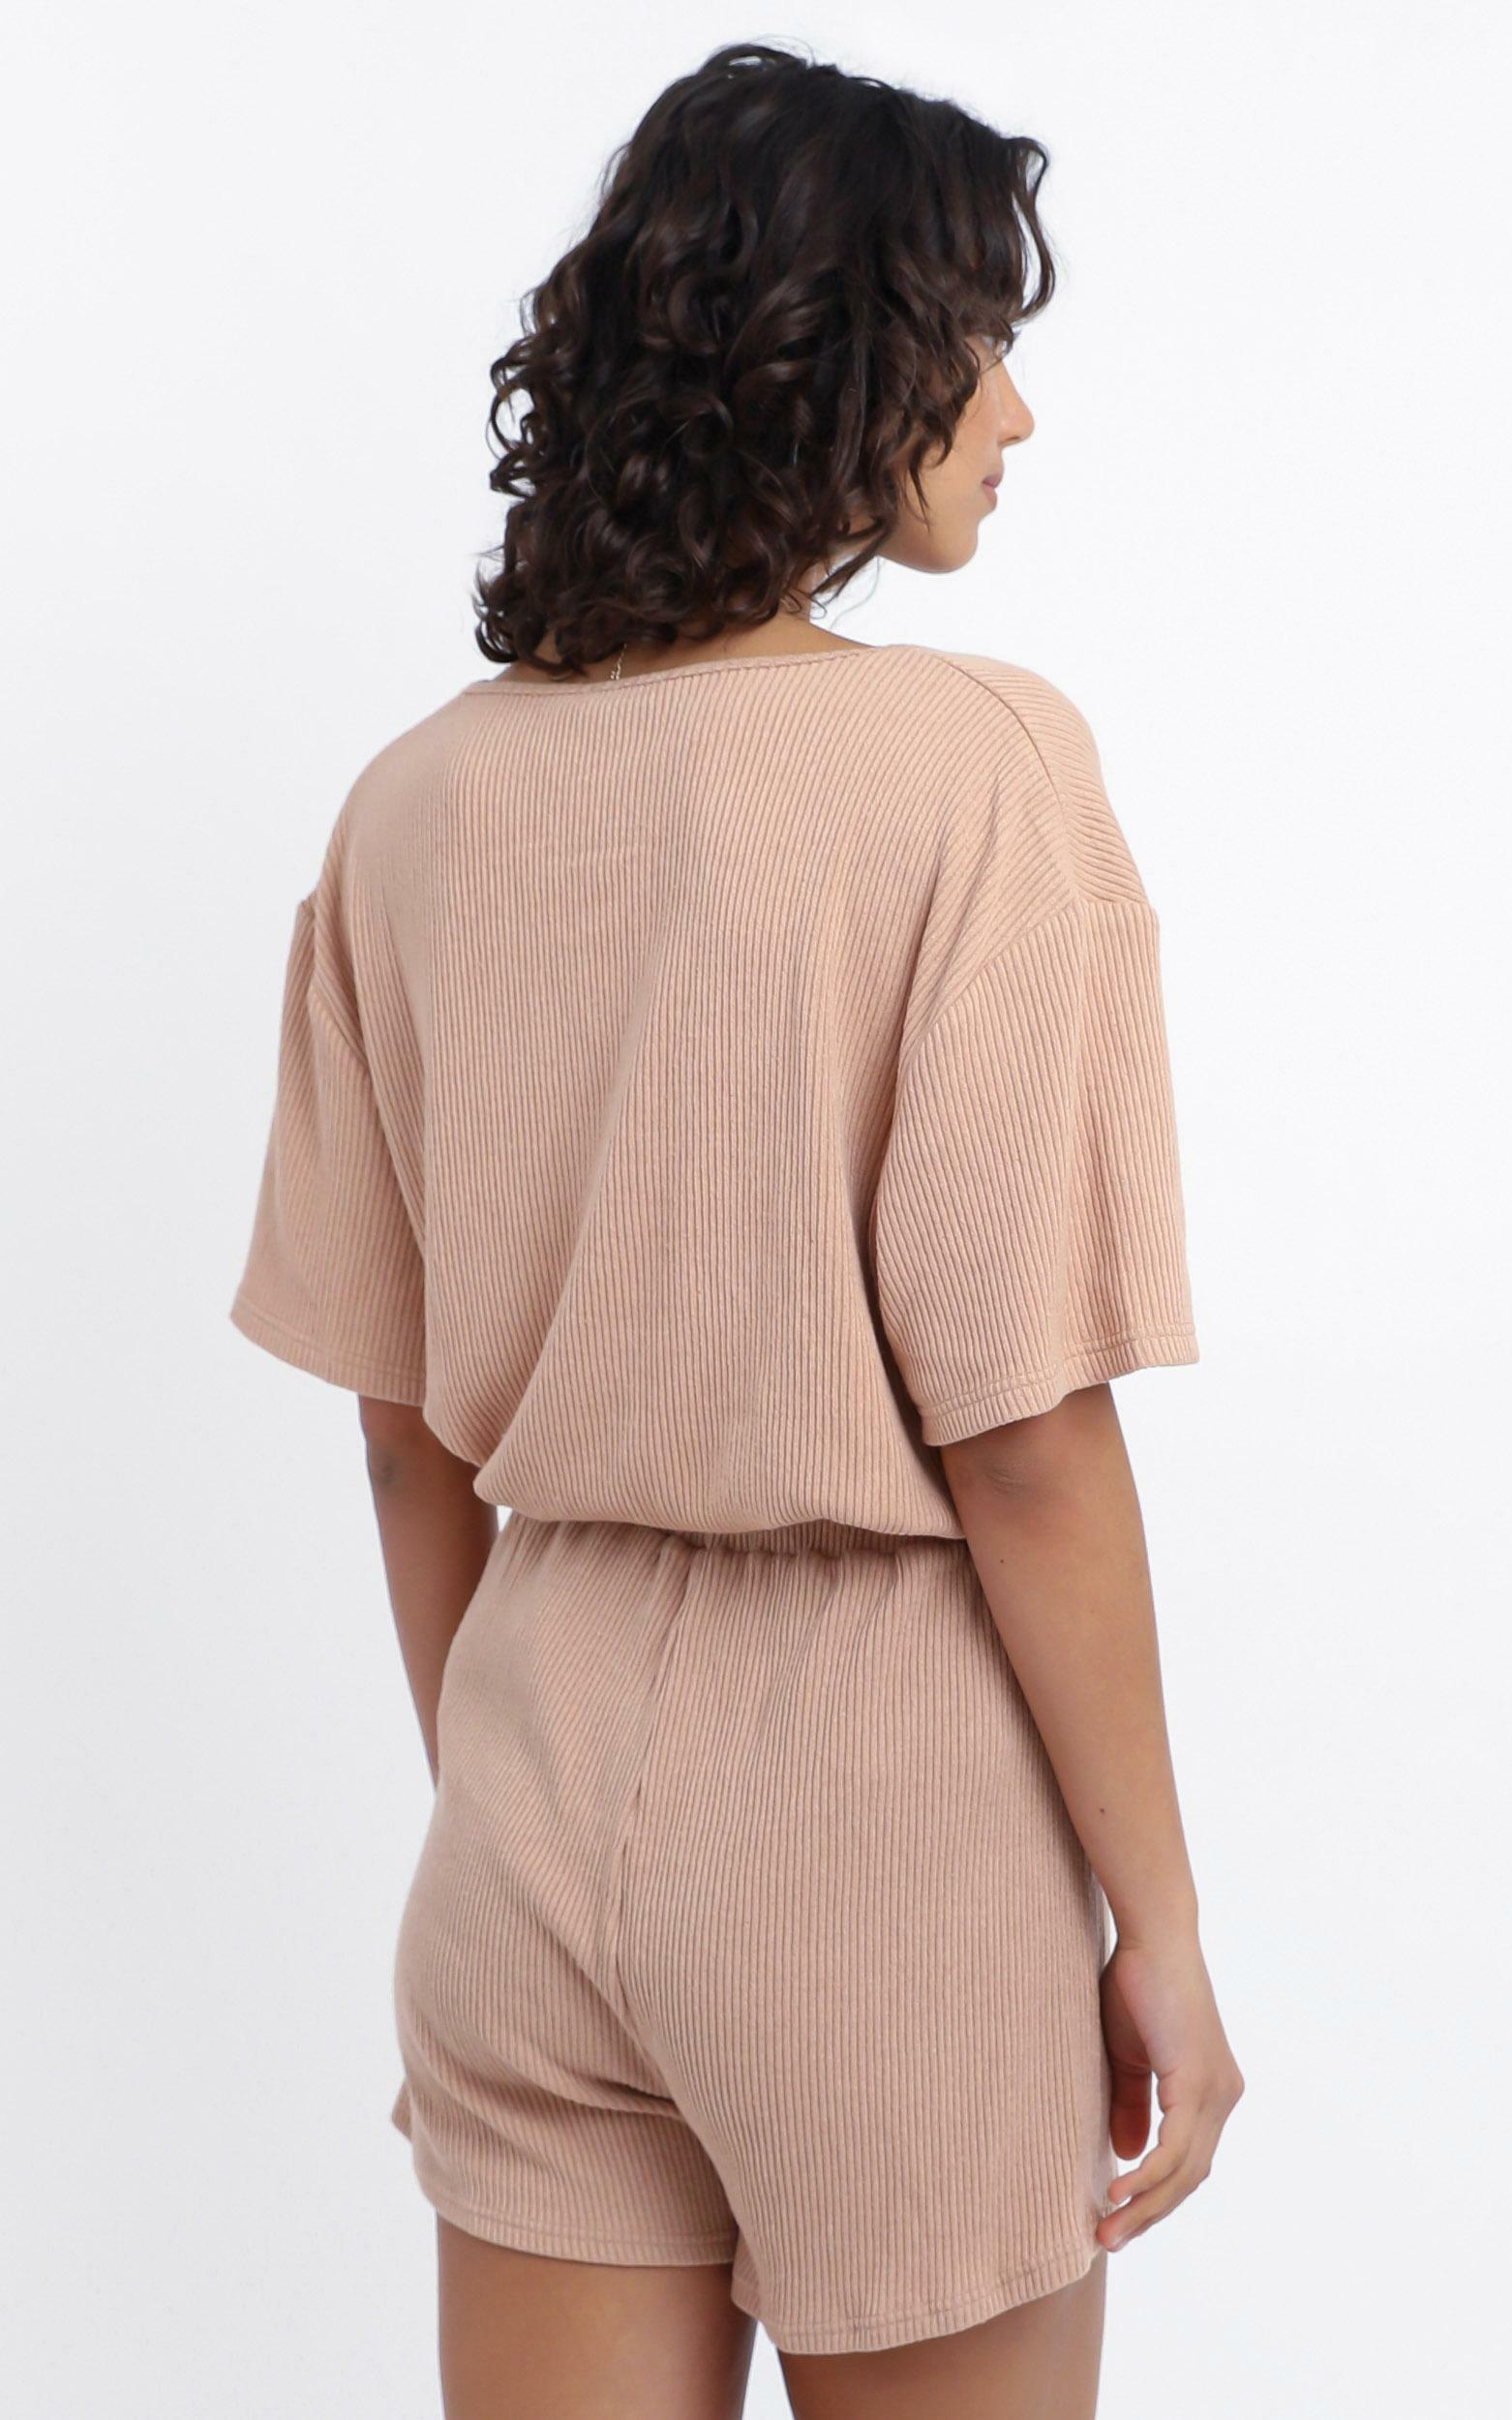 Avalon Shorts in Tan - 12 (L), BRN1, hi-res image number null